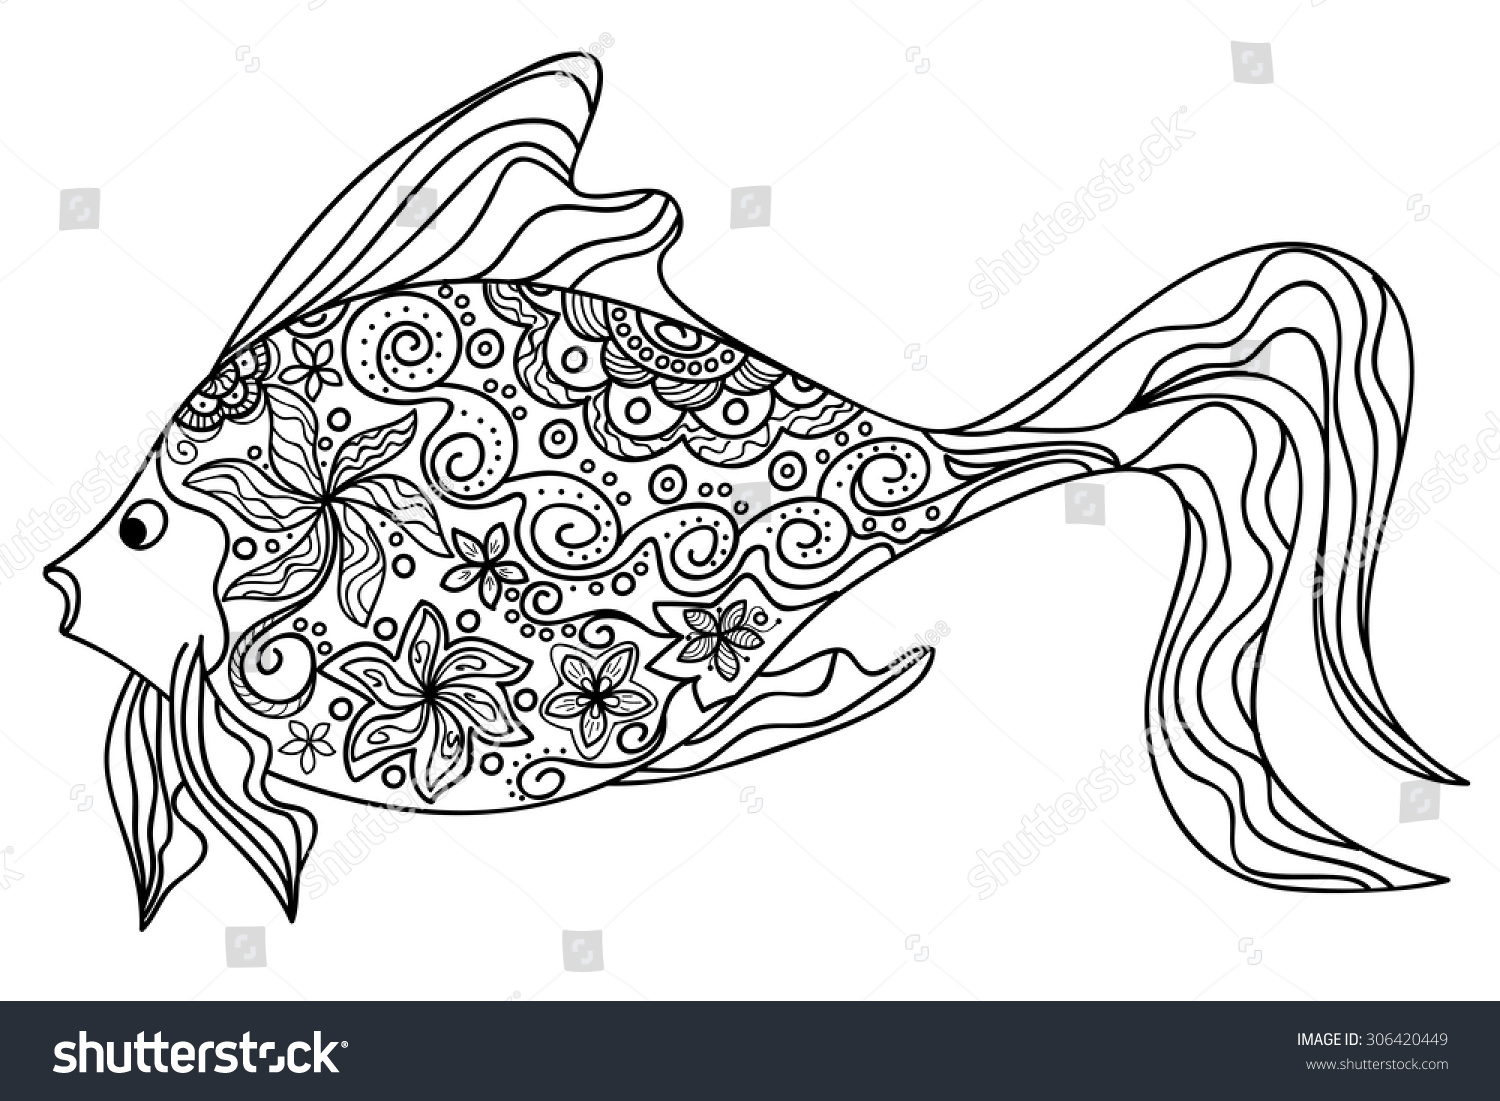 hand drawn decorated image fish henna stock vector 306420449